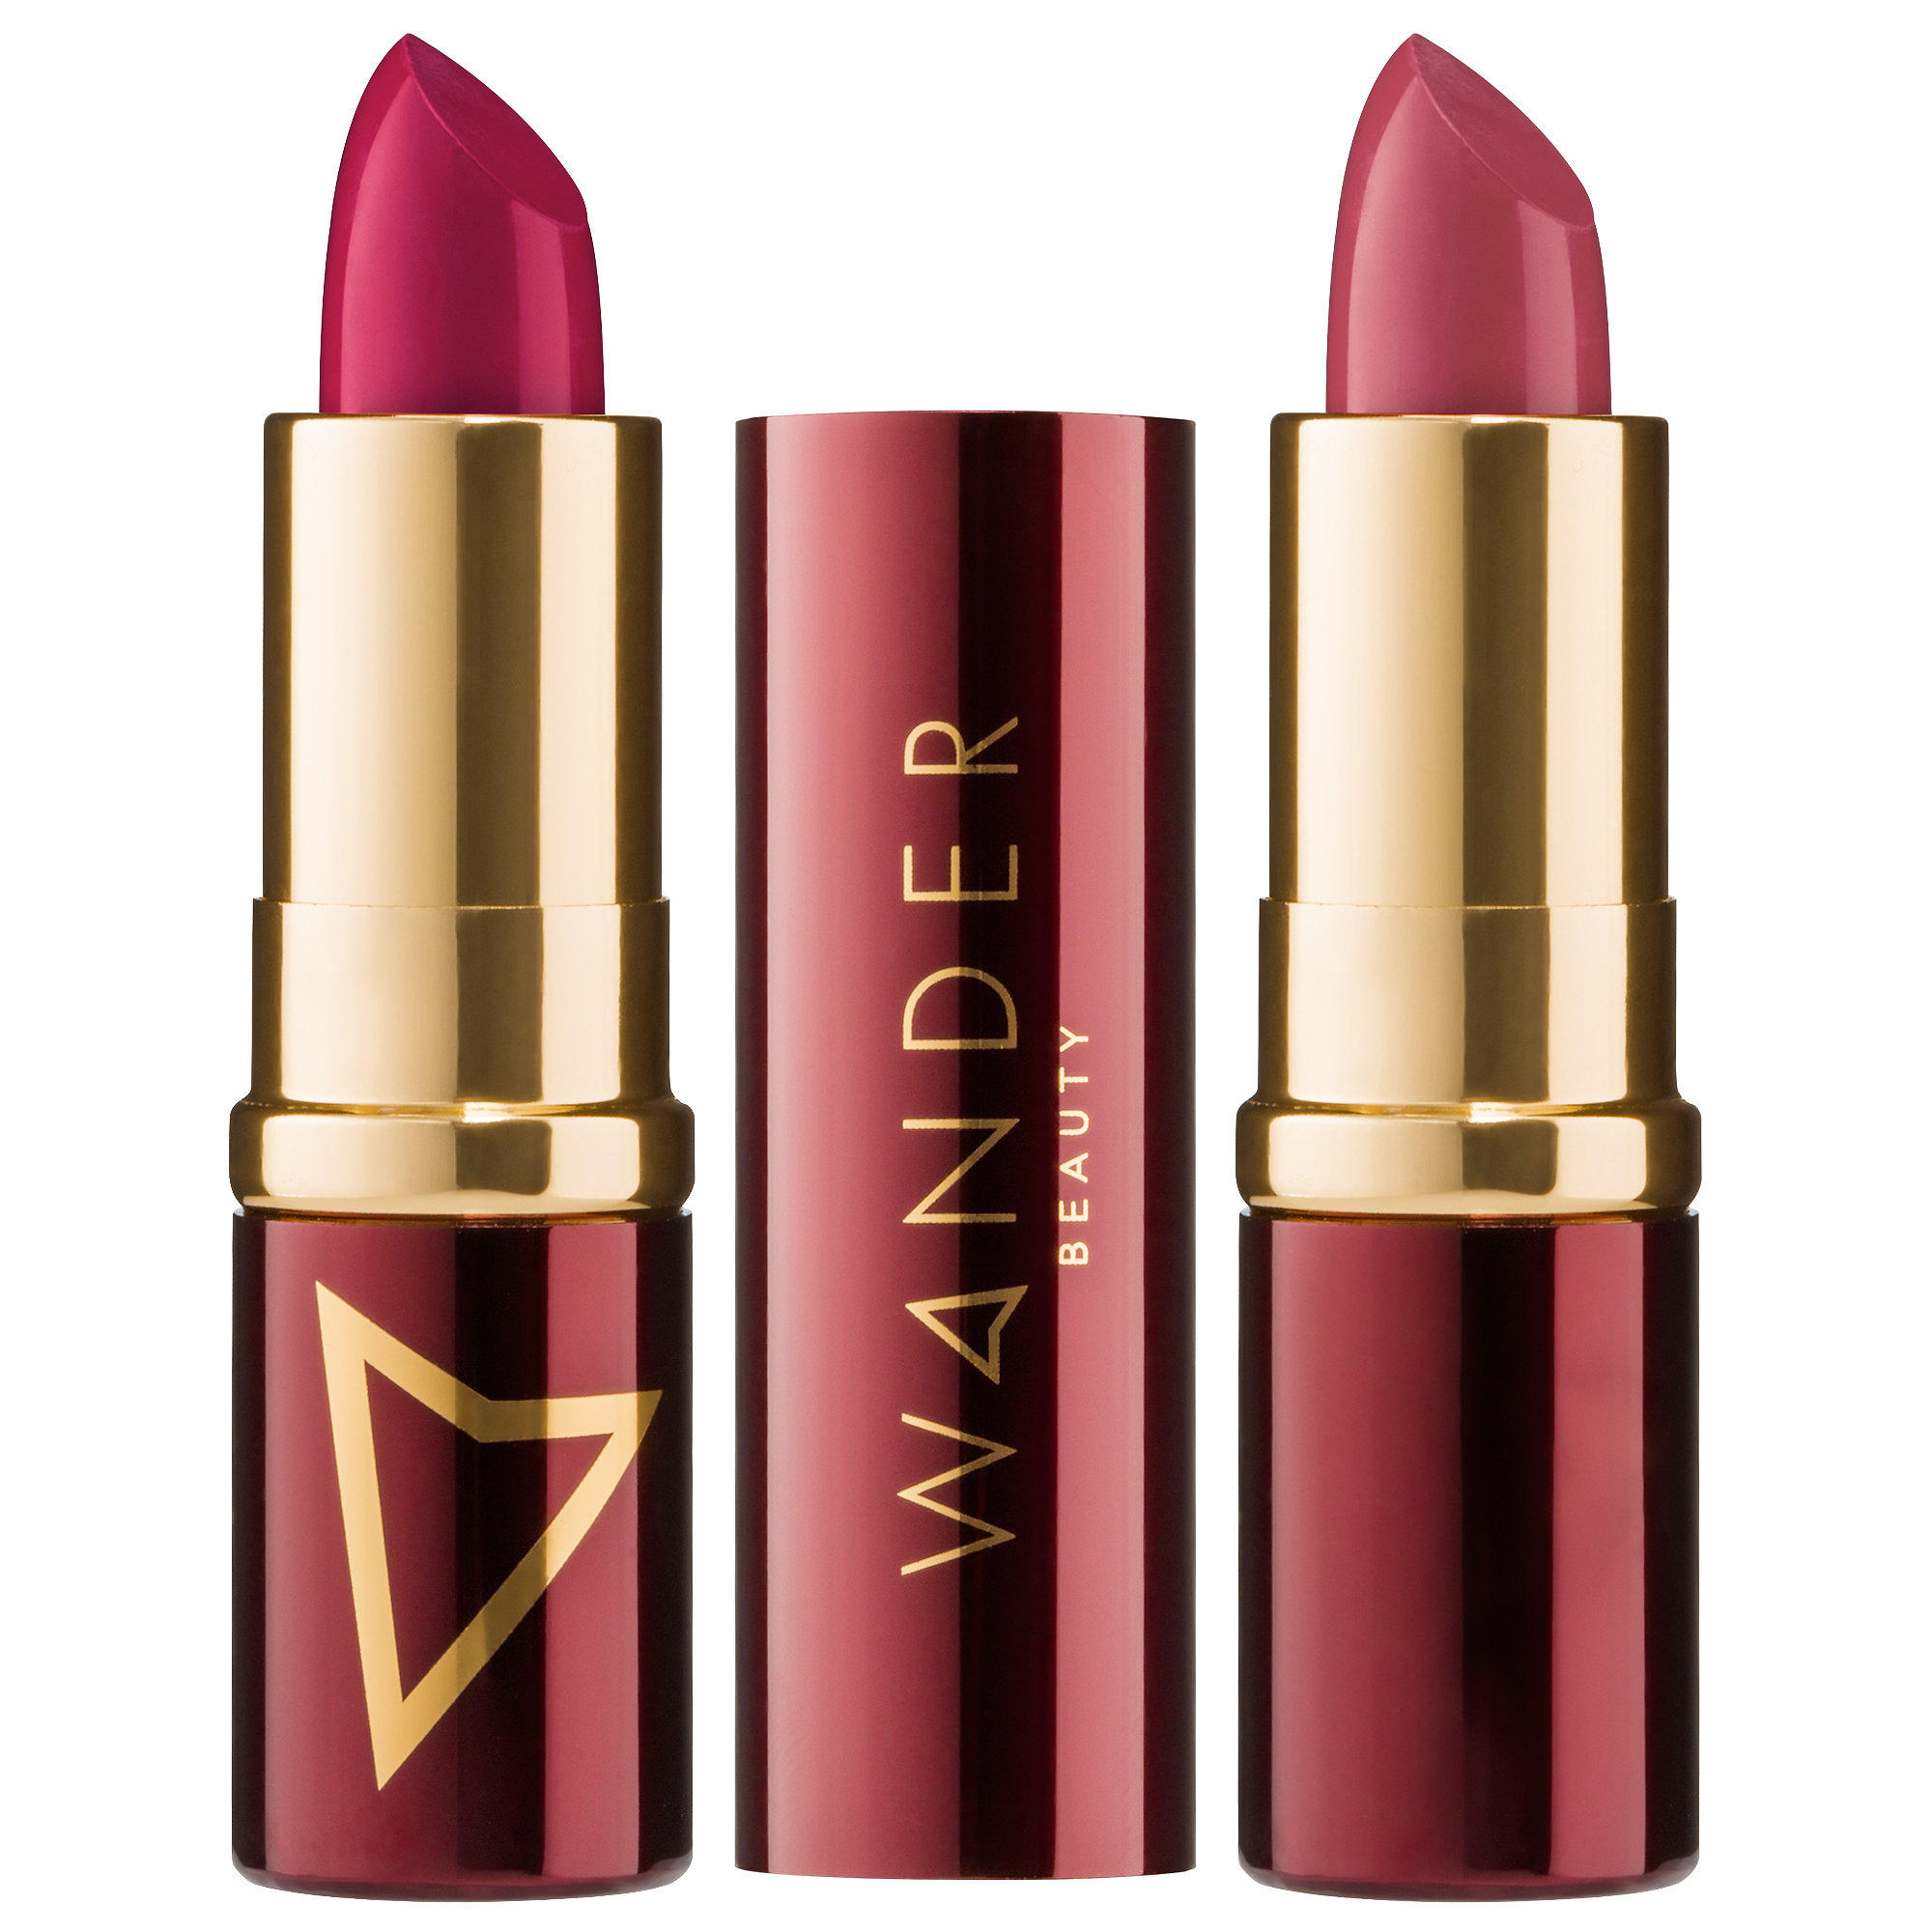 Wander Beauty Wanderout Dual Lipsticks Exhibitionist / BTS